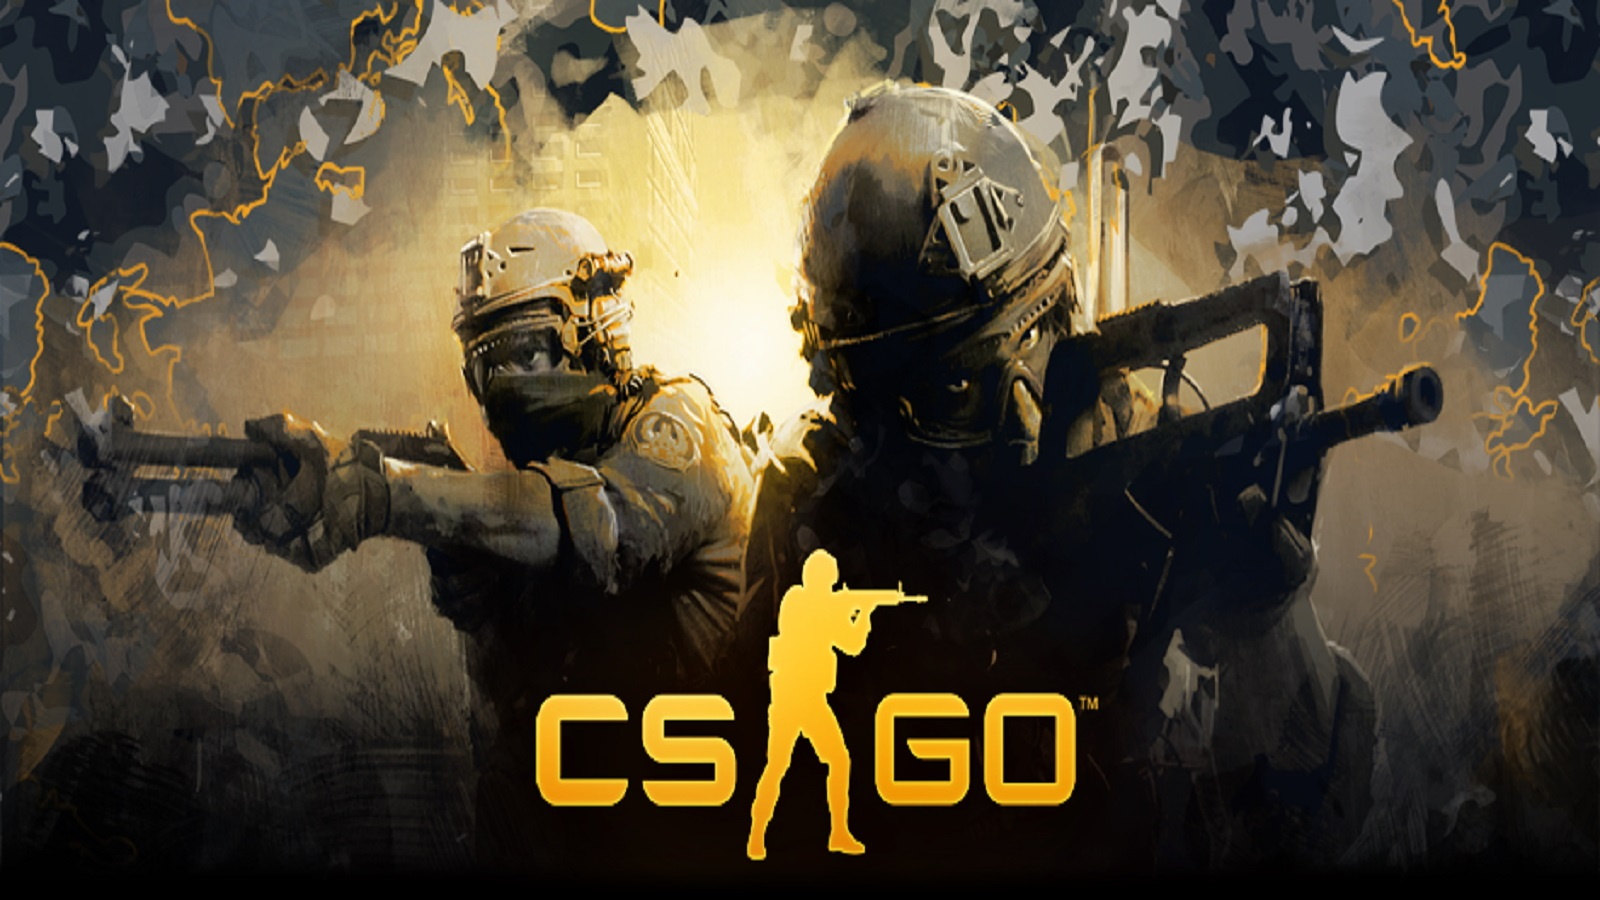 counter-strike-global-offensive-bate-records-despues-de-hacerse-free-to-play-frikigamers.com